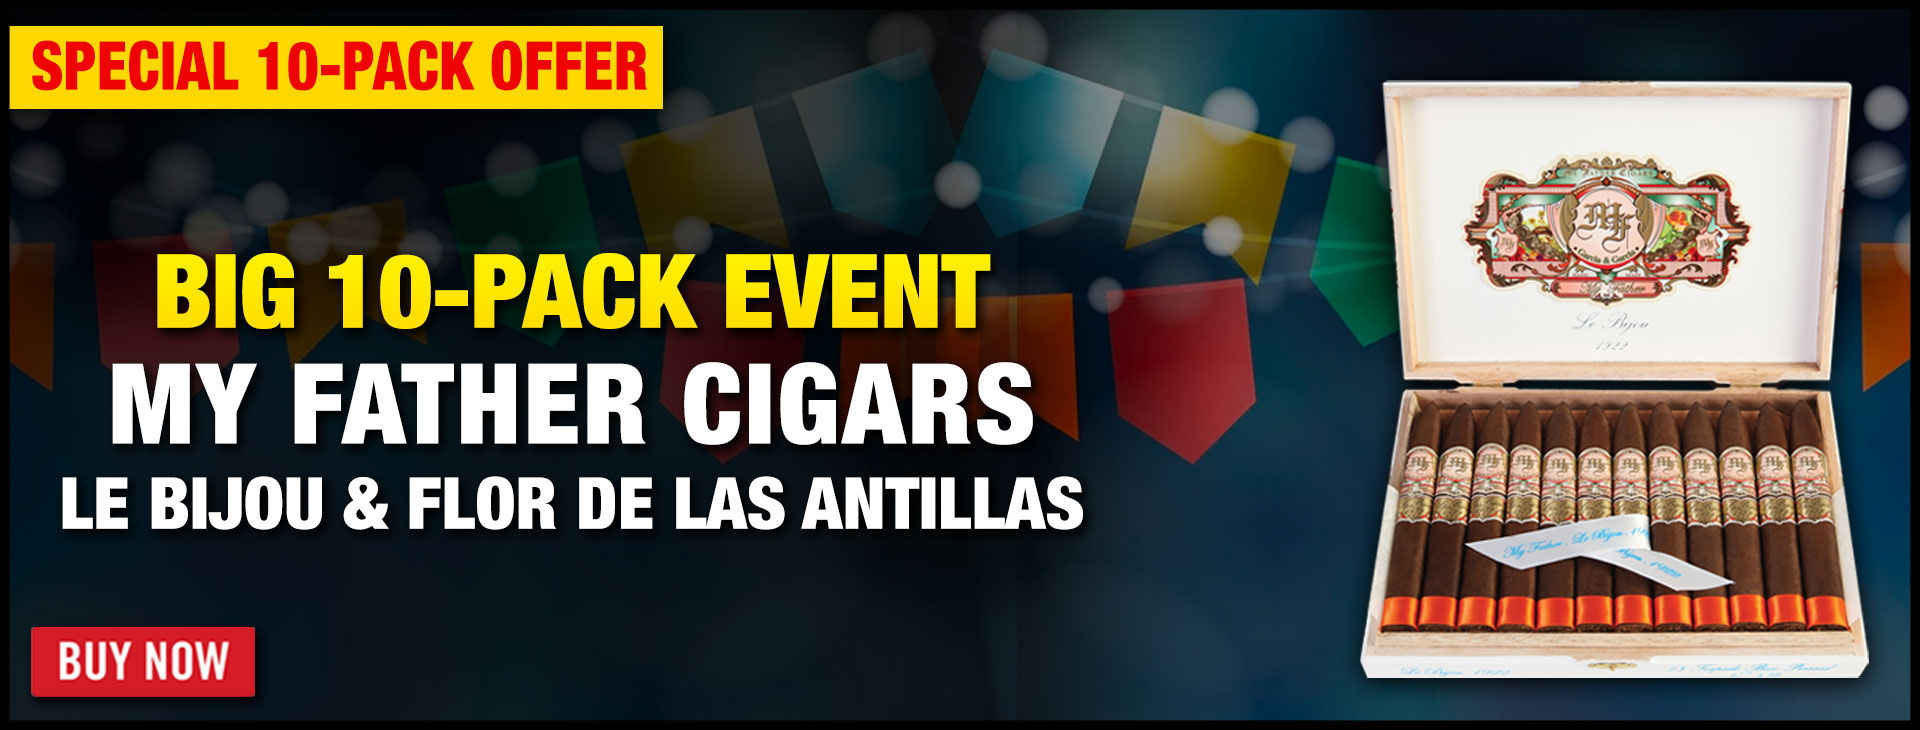 my-father-cigars-2021-banner.jpg